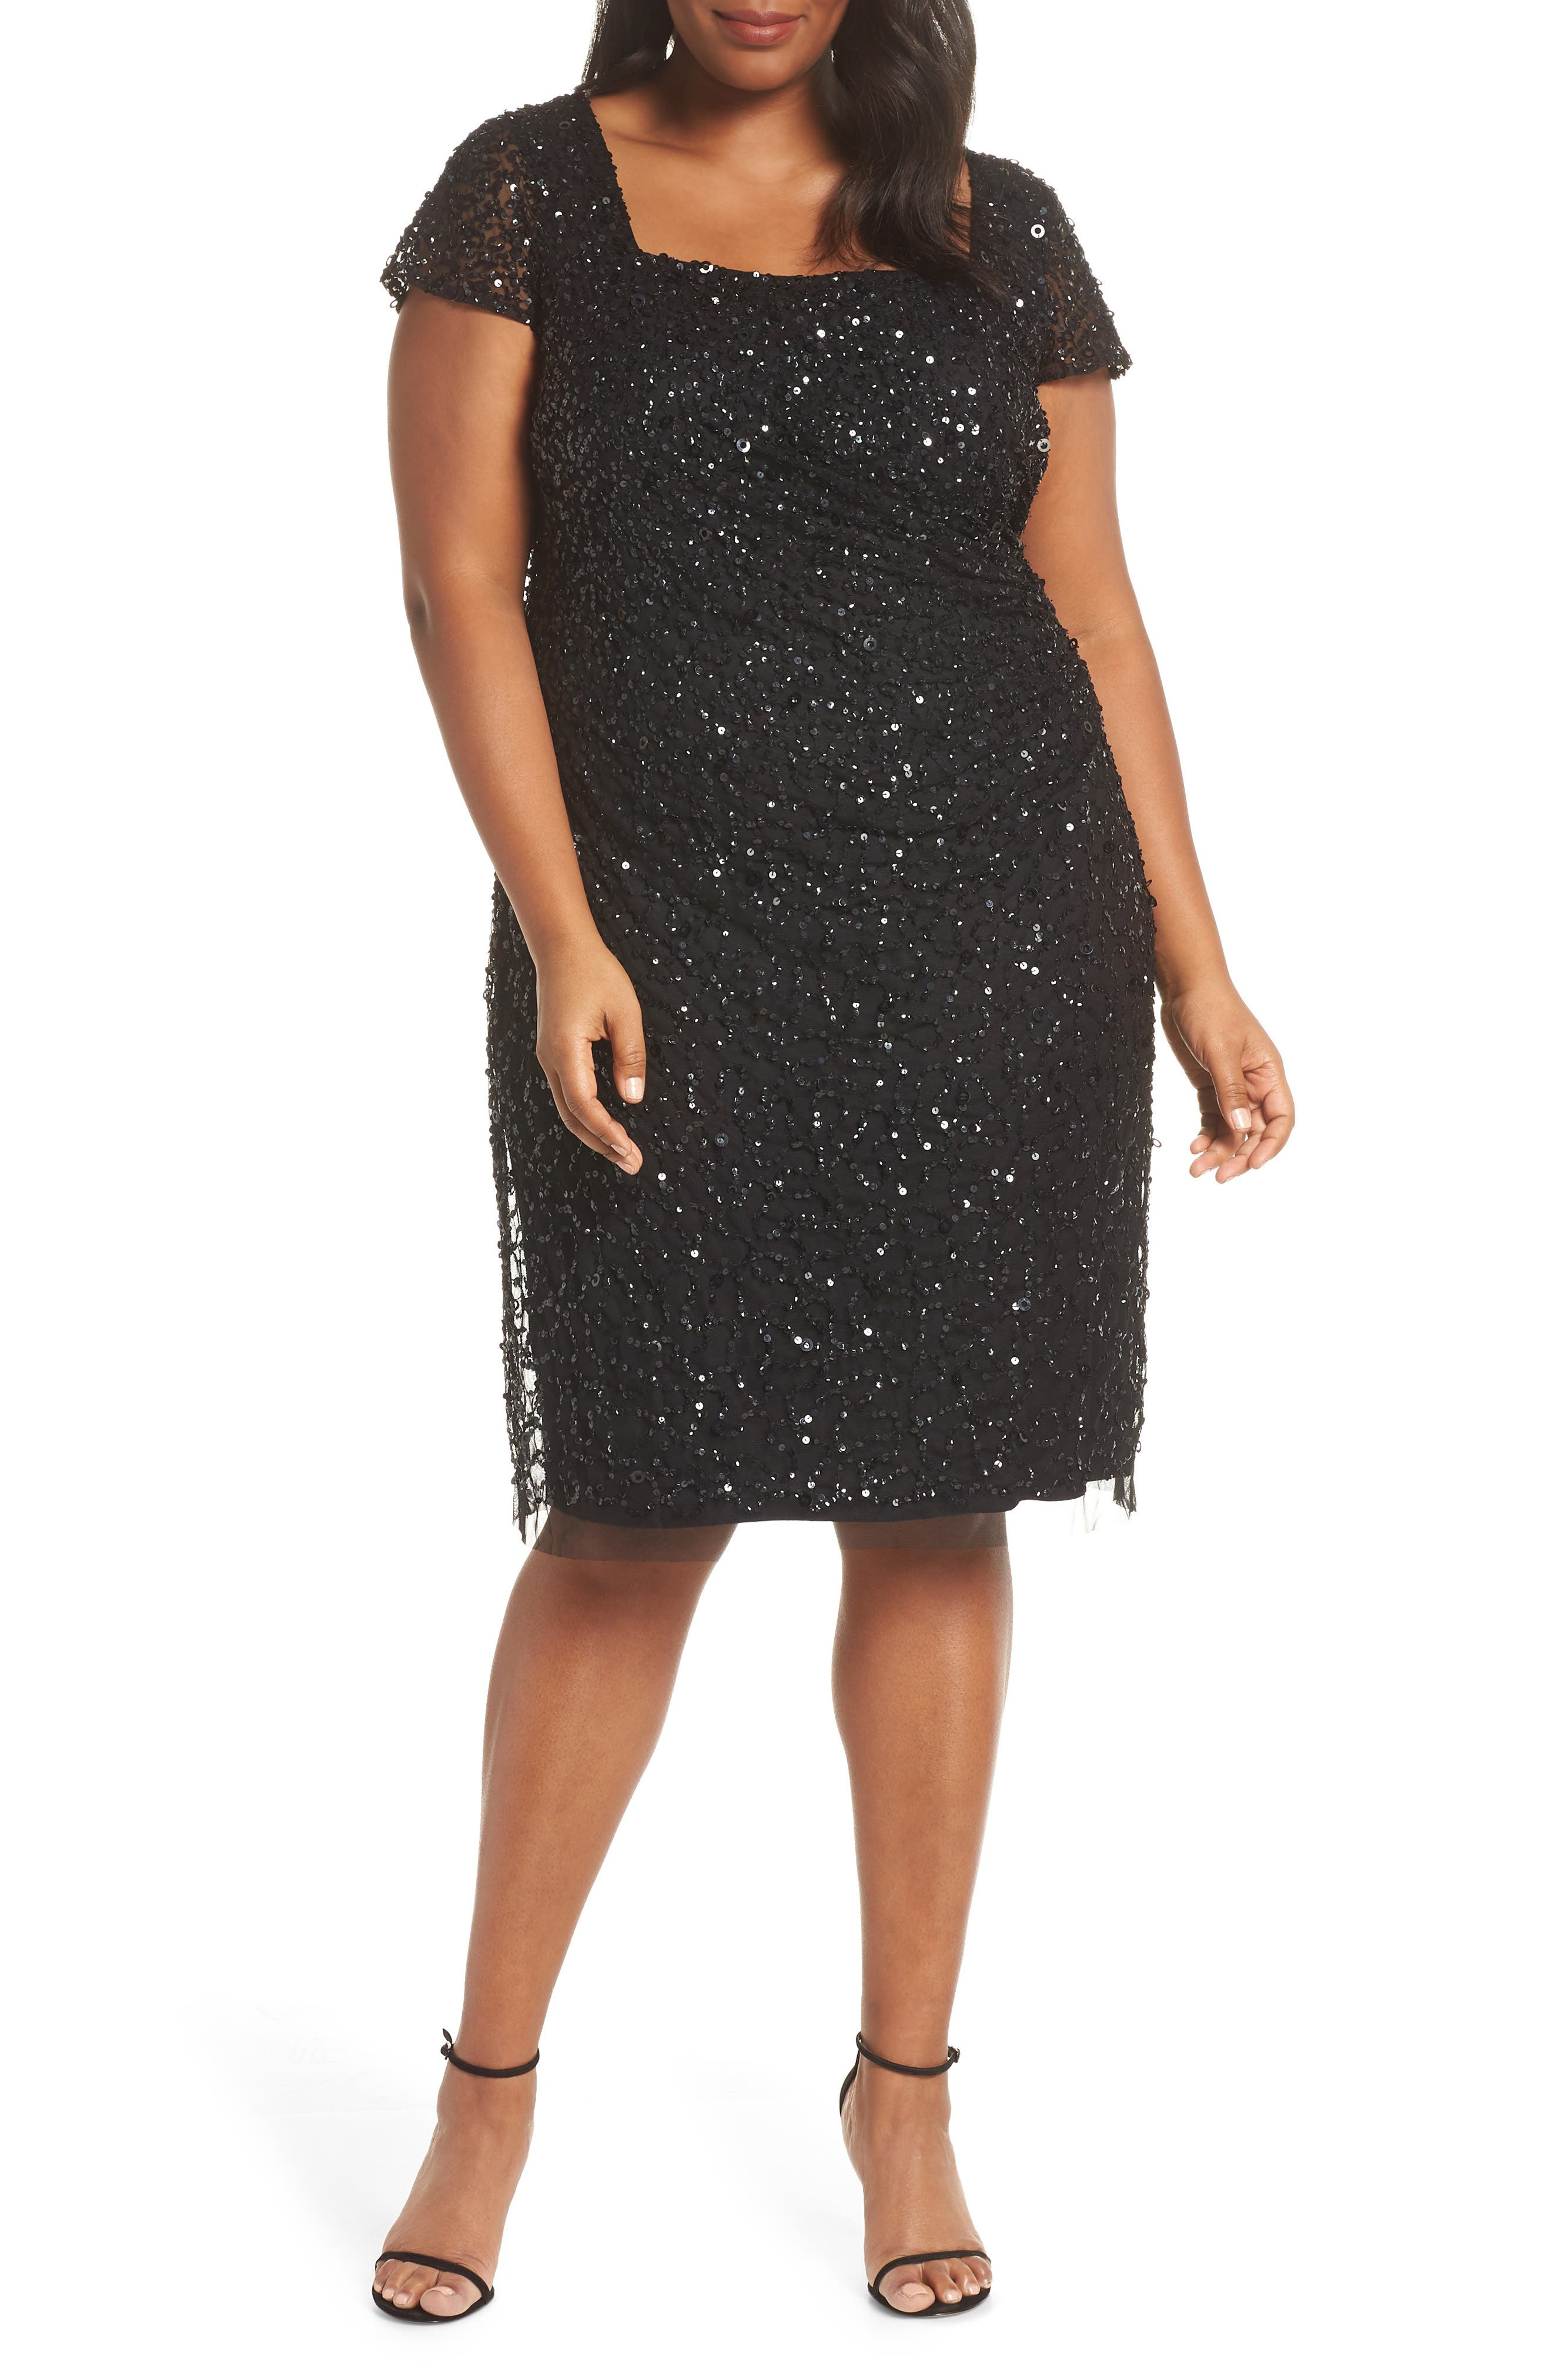 Plus Size Adrianna Papell Beaded Dress